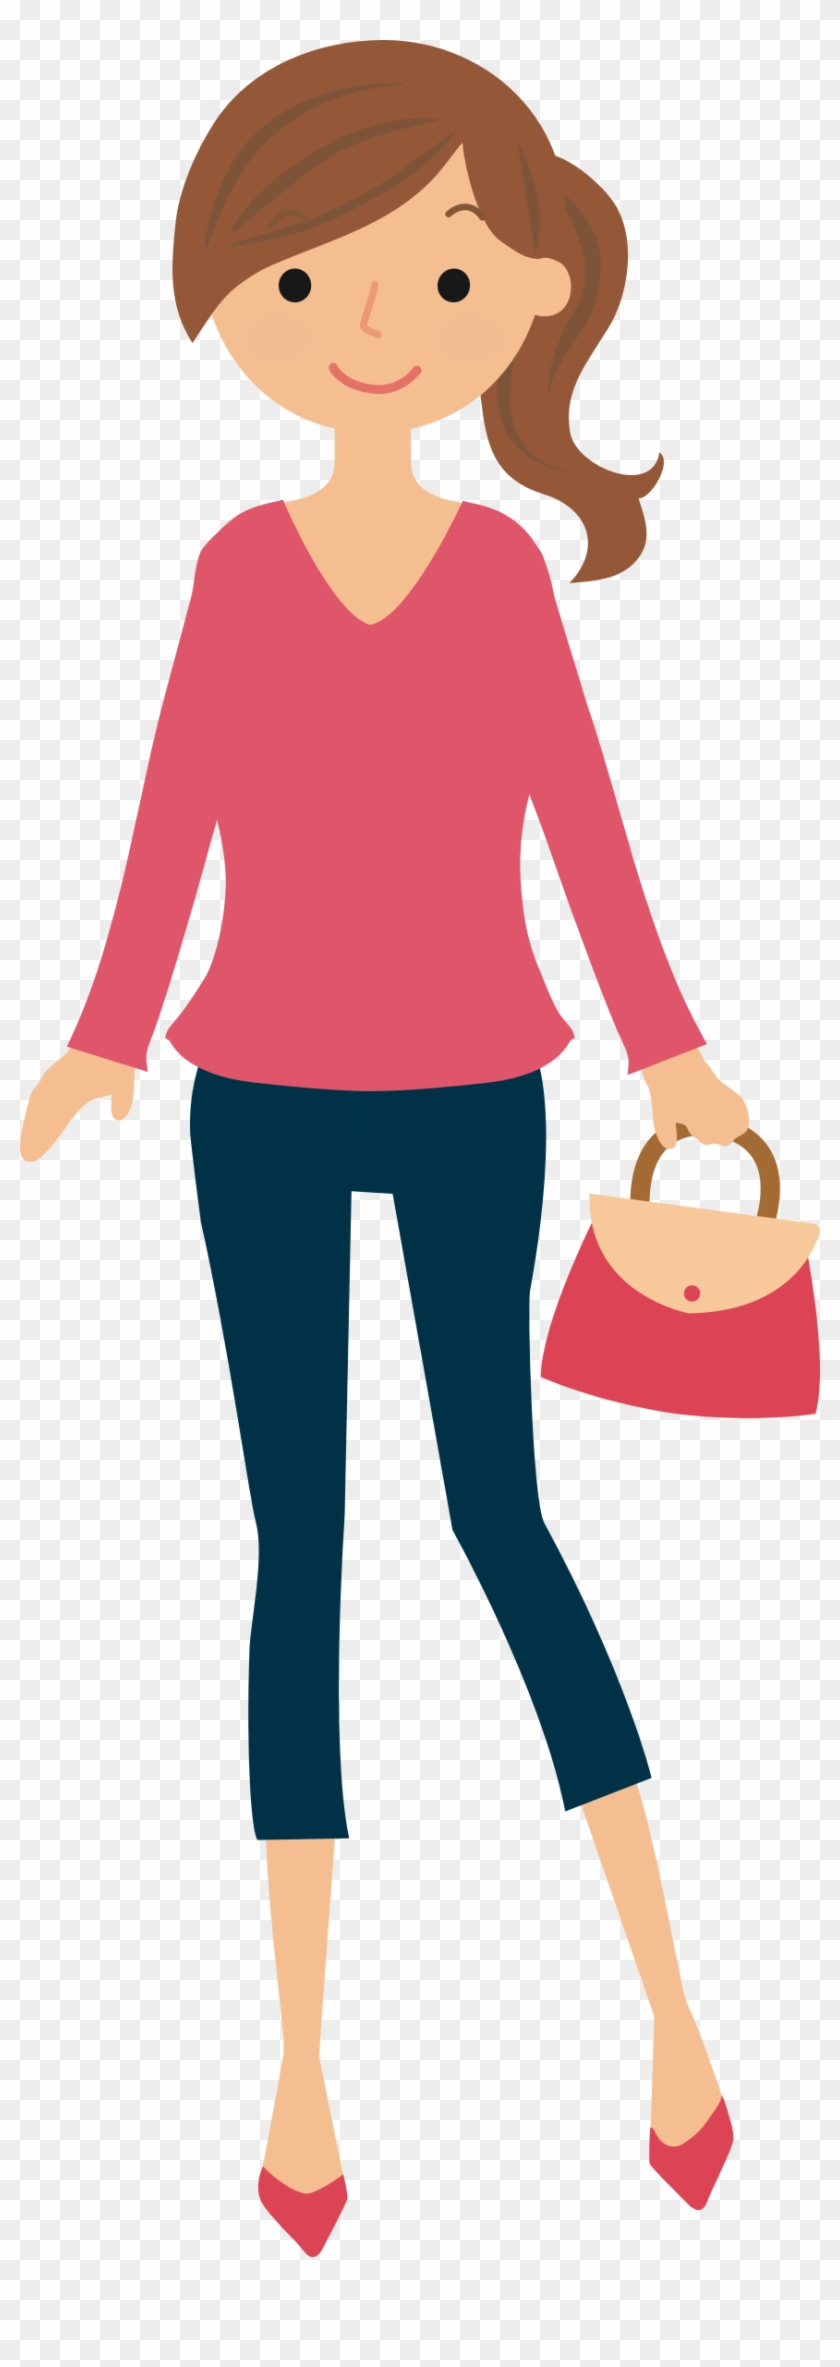 Big Image - Woman Shopping Icon Png #1739817